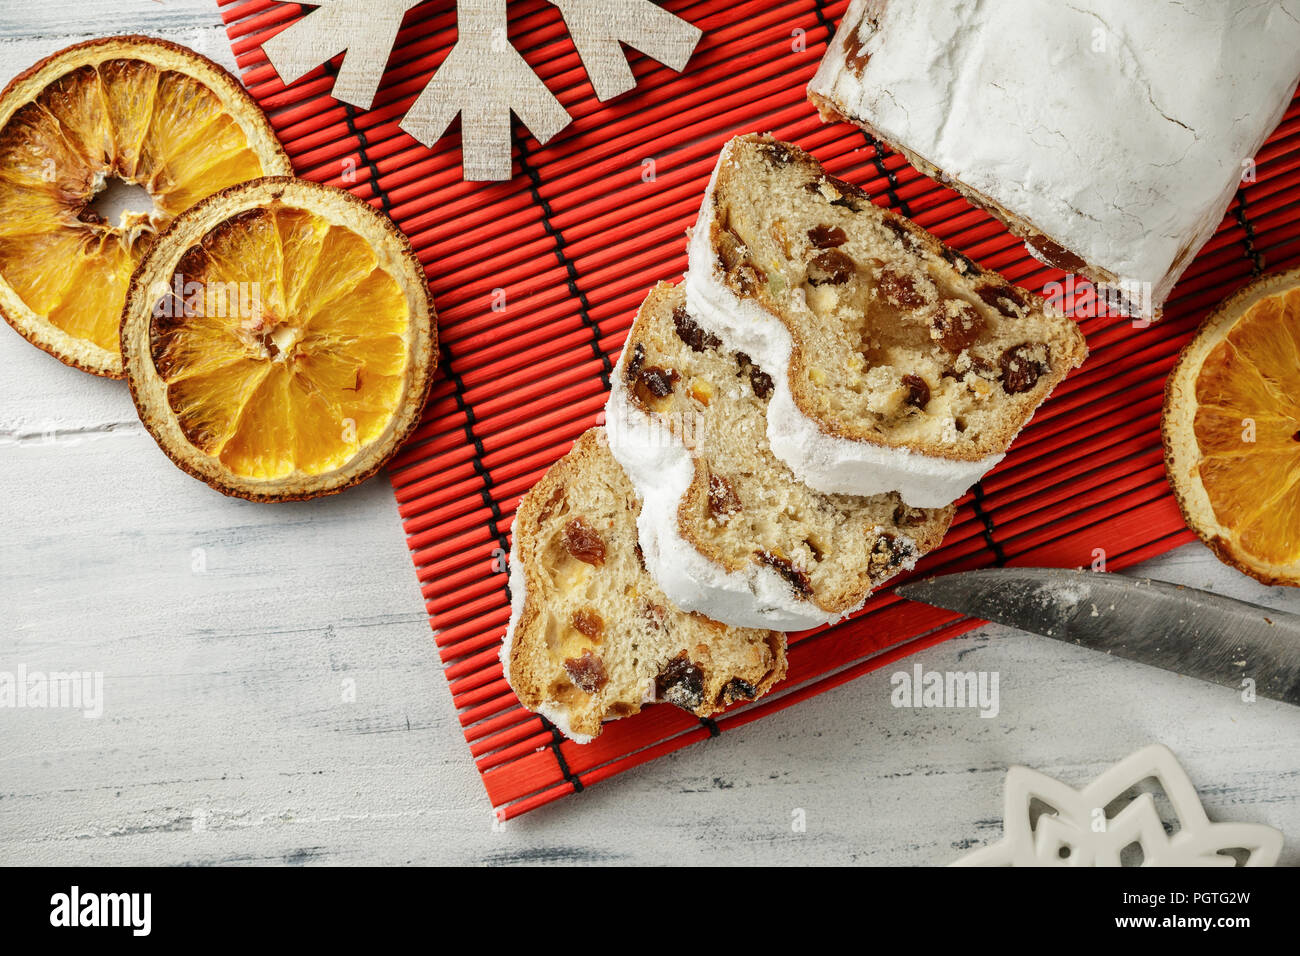 Stollen, traditional German Christmas yeast cake with raisins on the table, top view - Stock Image